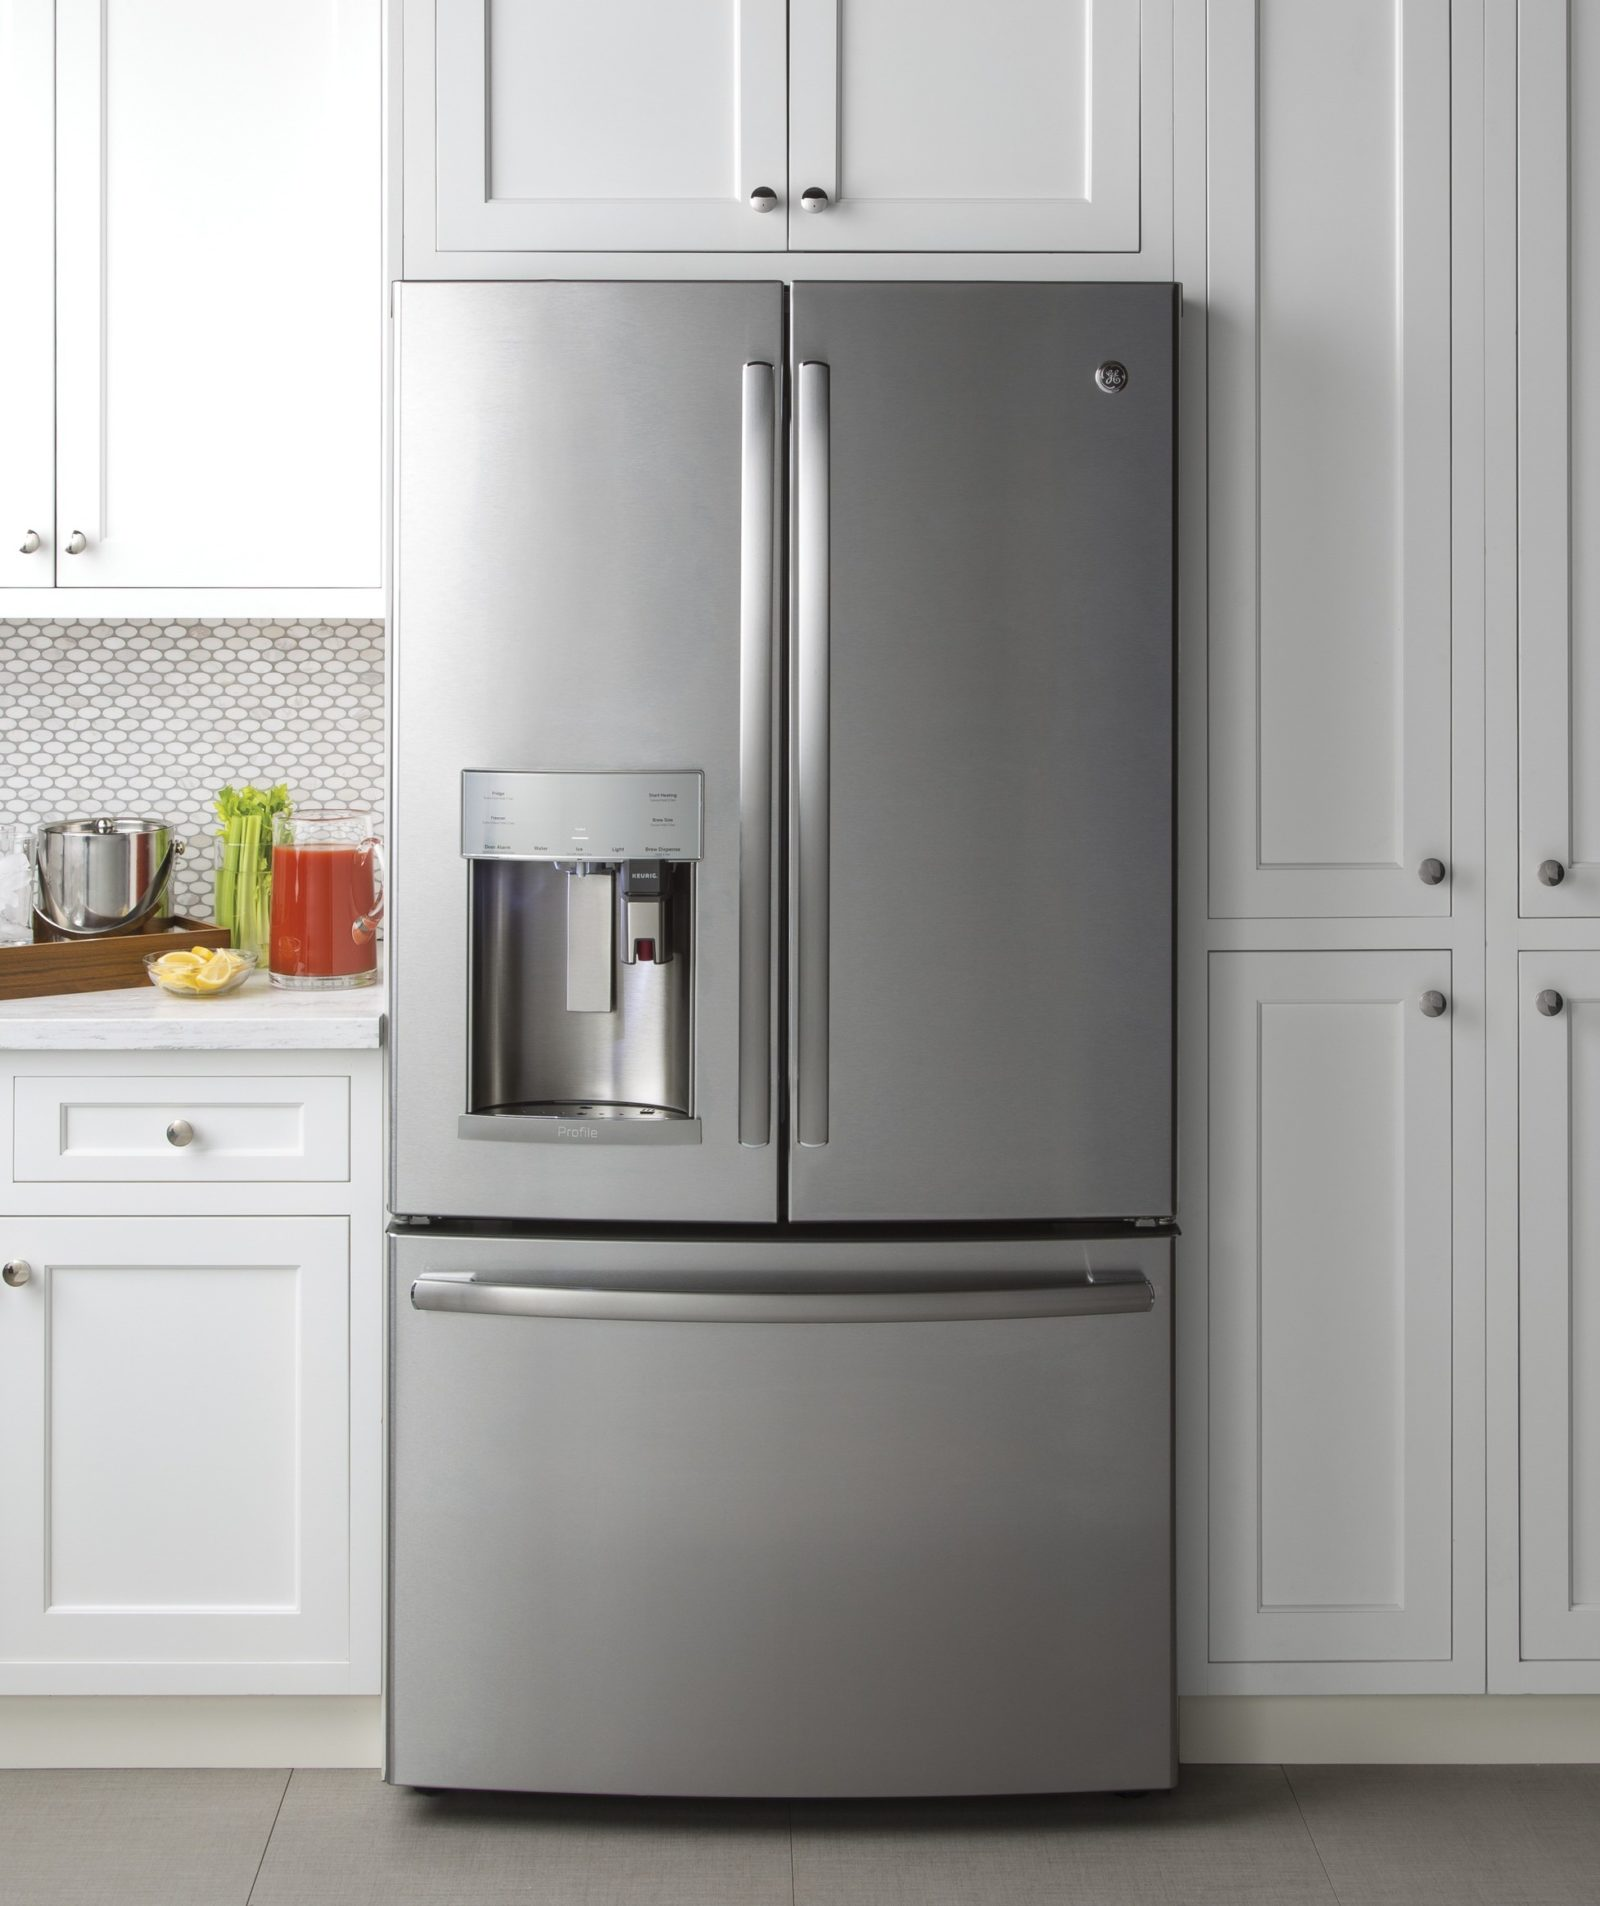 GE Profile Refrigerator Best Buy